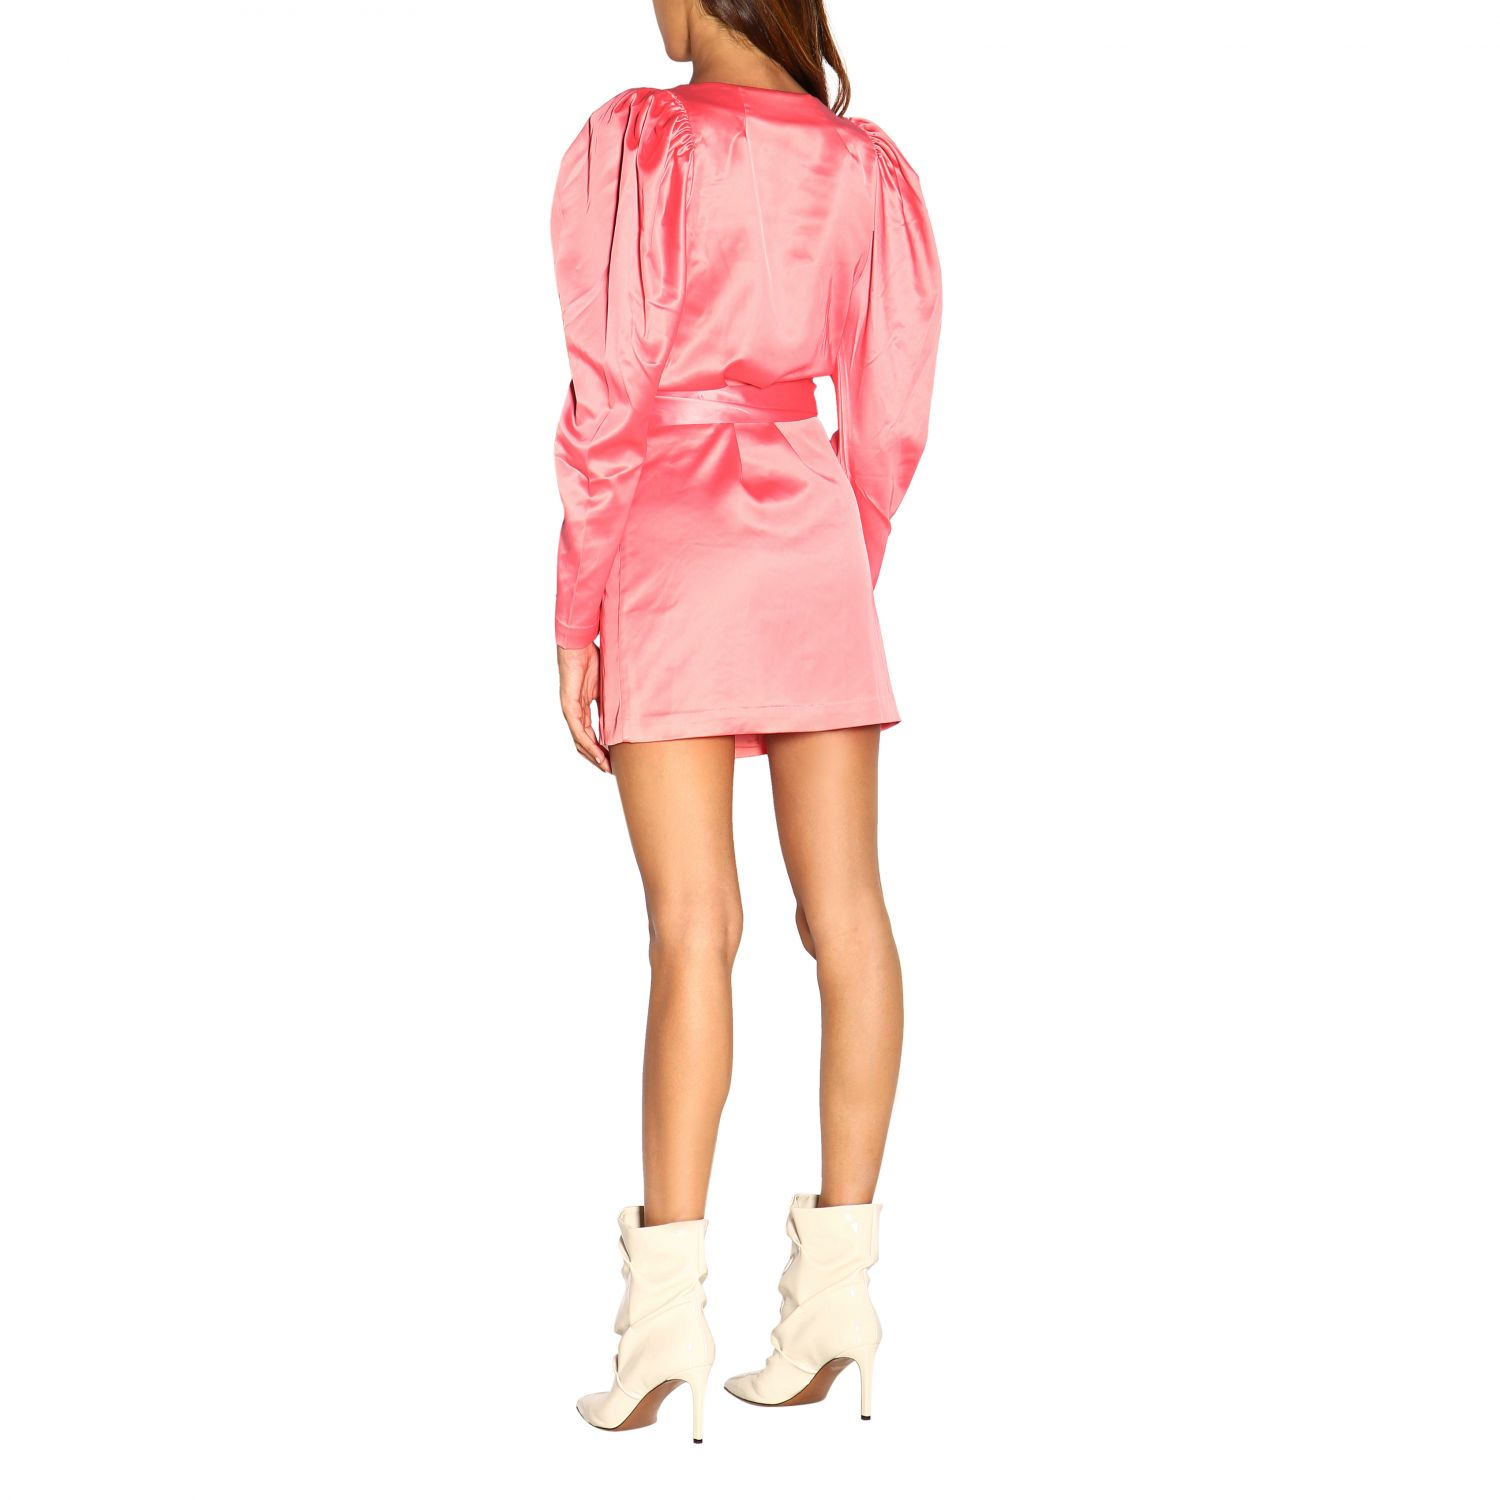 Robes femme Rotate rose 2